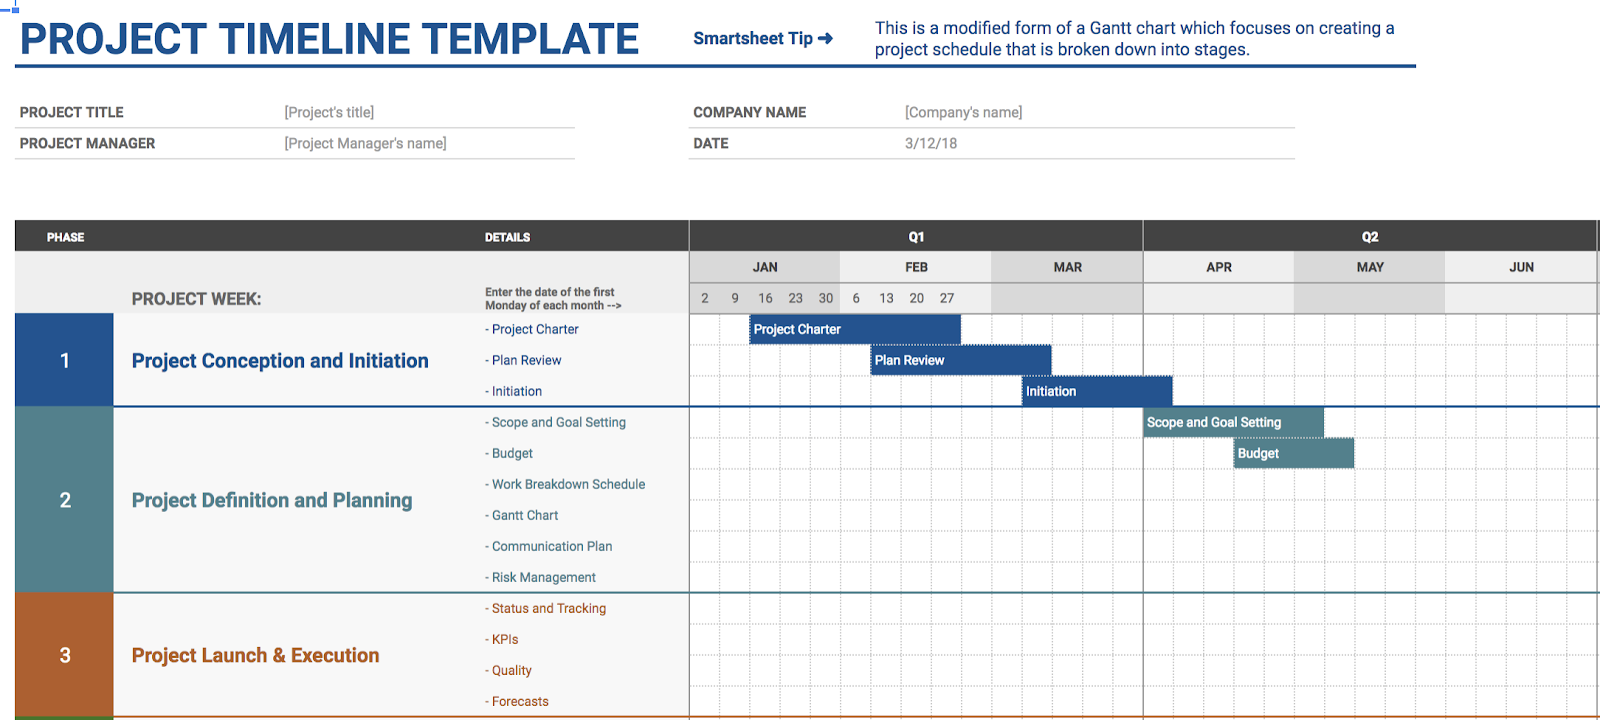 The Template Helps You Visually Break Up A Daunting Project Into Smaller Pieces Ideally Making It Easier And Less Stressful To Organize Delegate Tasks